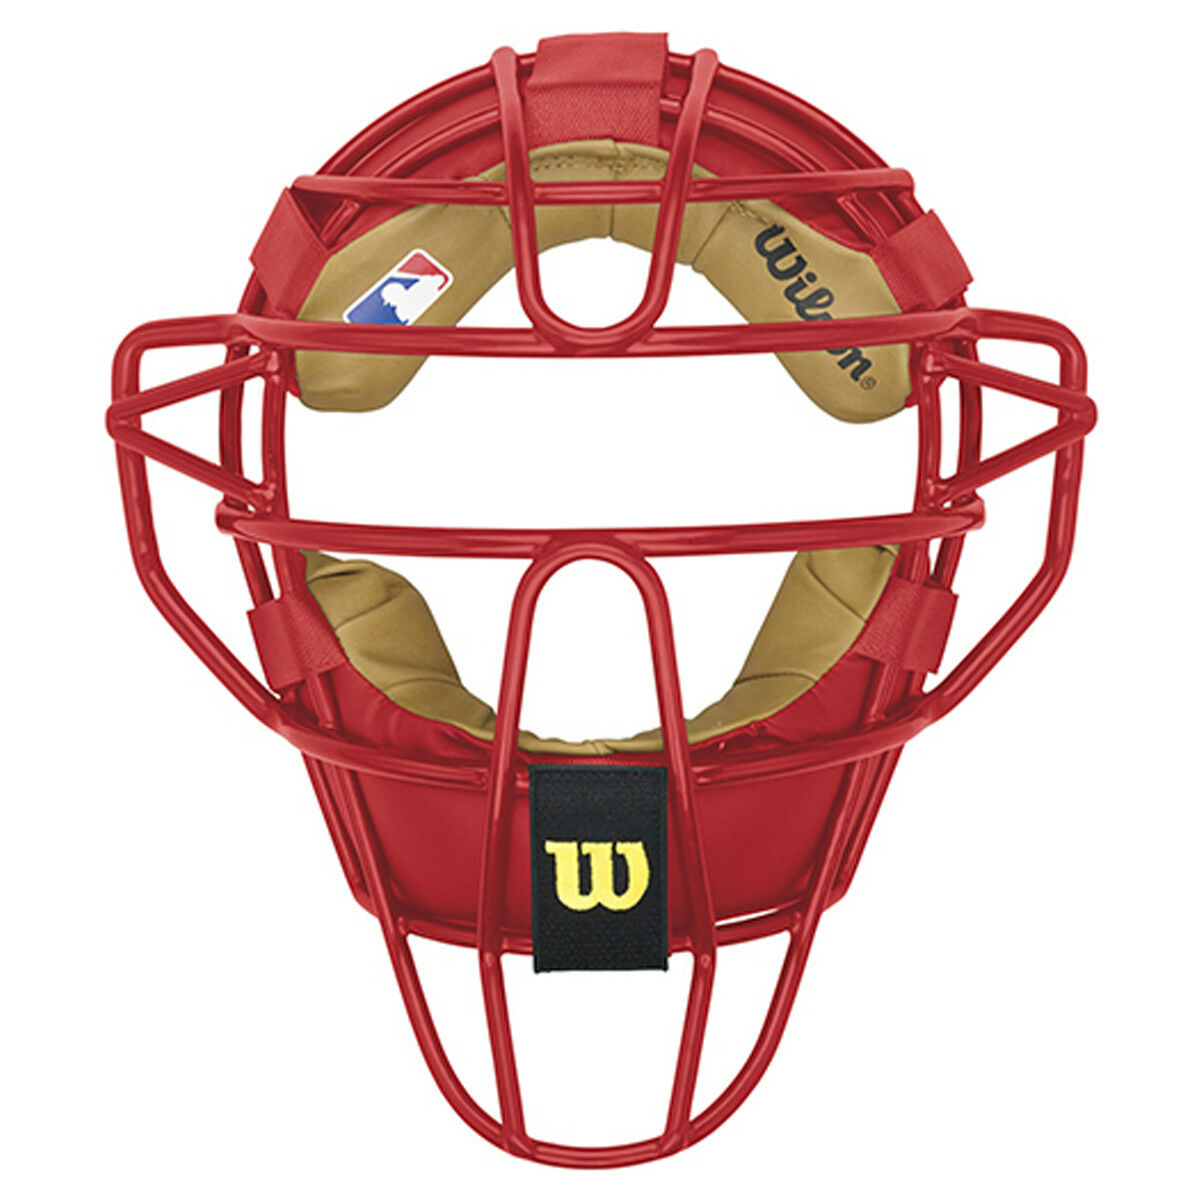 Wilson Dyna-Lite Steel Catcher's Mask - Various colors (NEW) Lists @